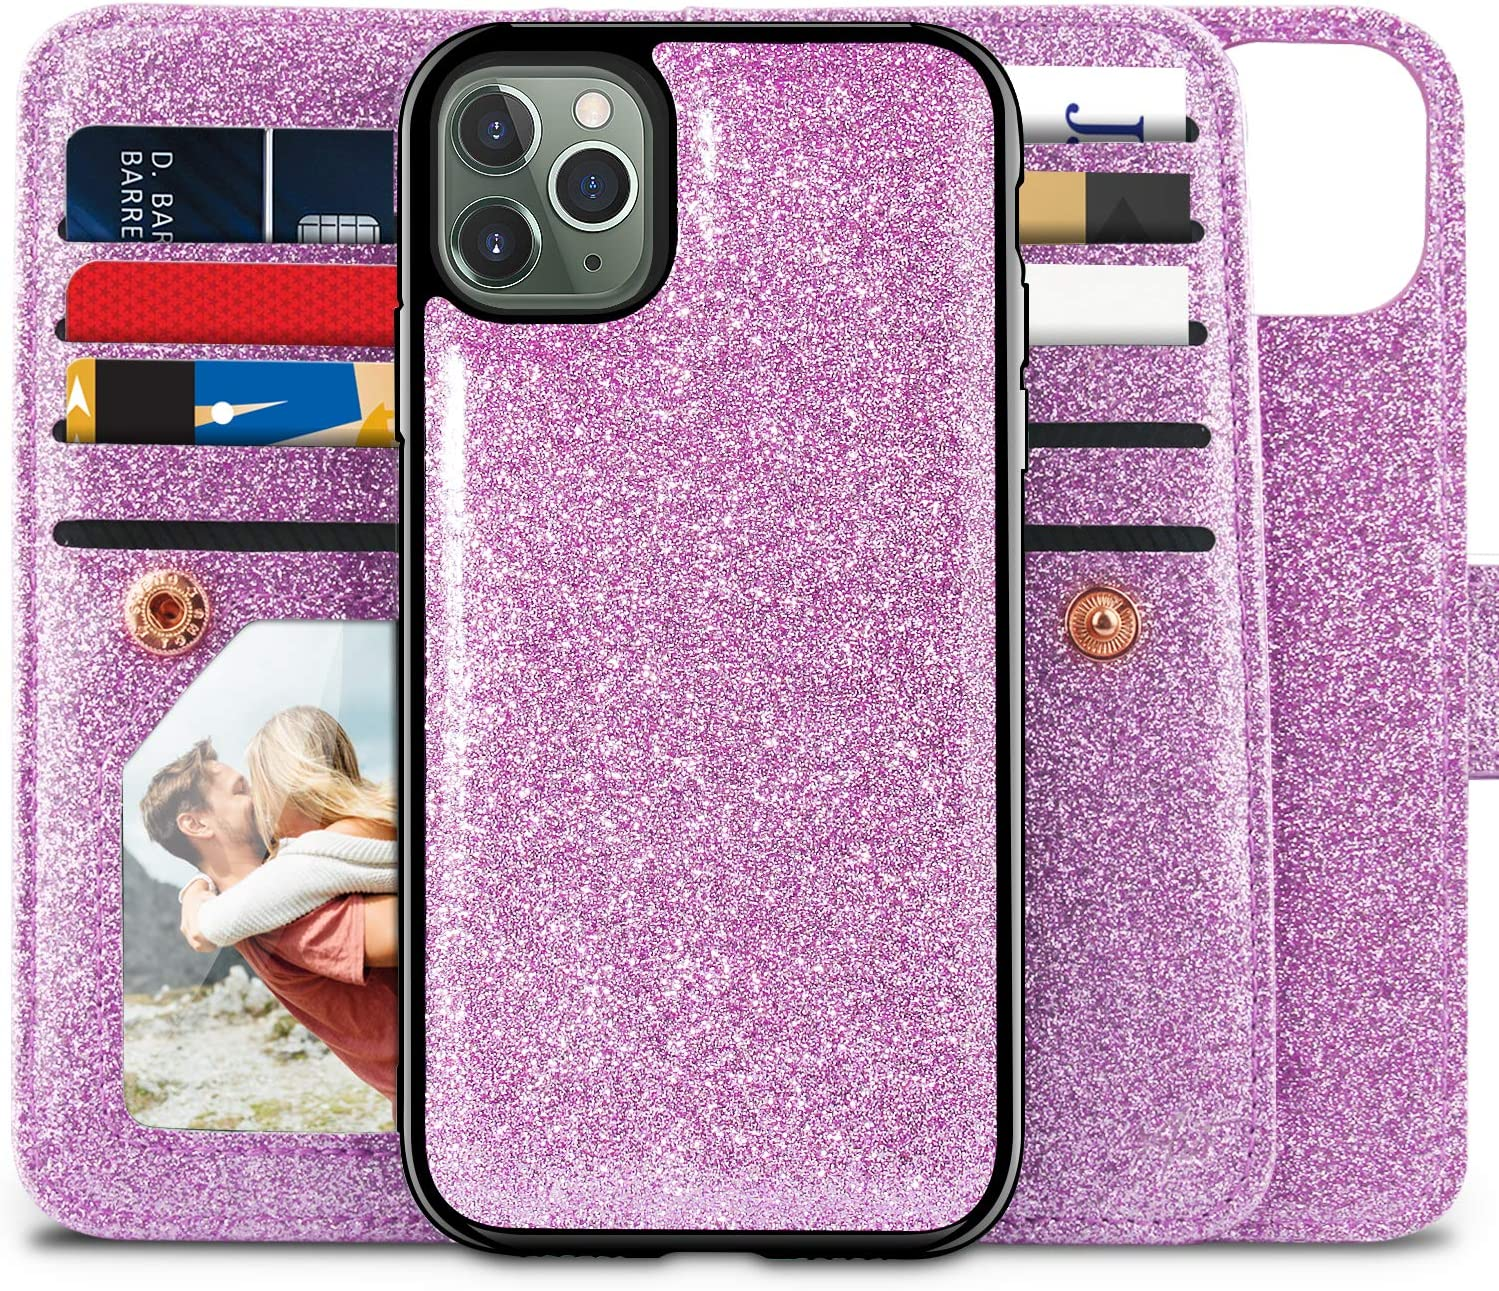 Miss Arts Compatible with iPhone 11 Pro Max Wallet Case,Detachable Magnetic Slim Case, 9 Card/Cash Slots, Wrist Strap, PU Leather Cover for Apple iPhone 11 Pro Max -Purple